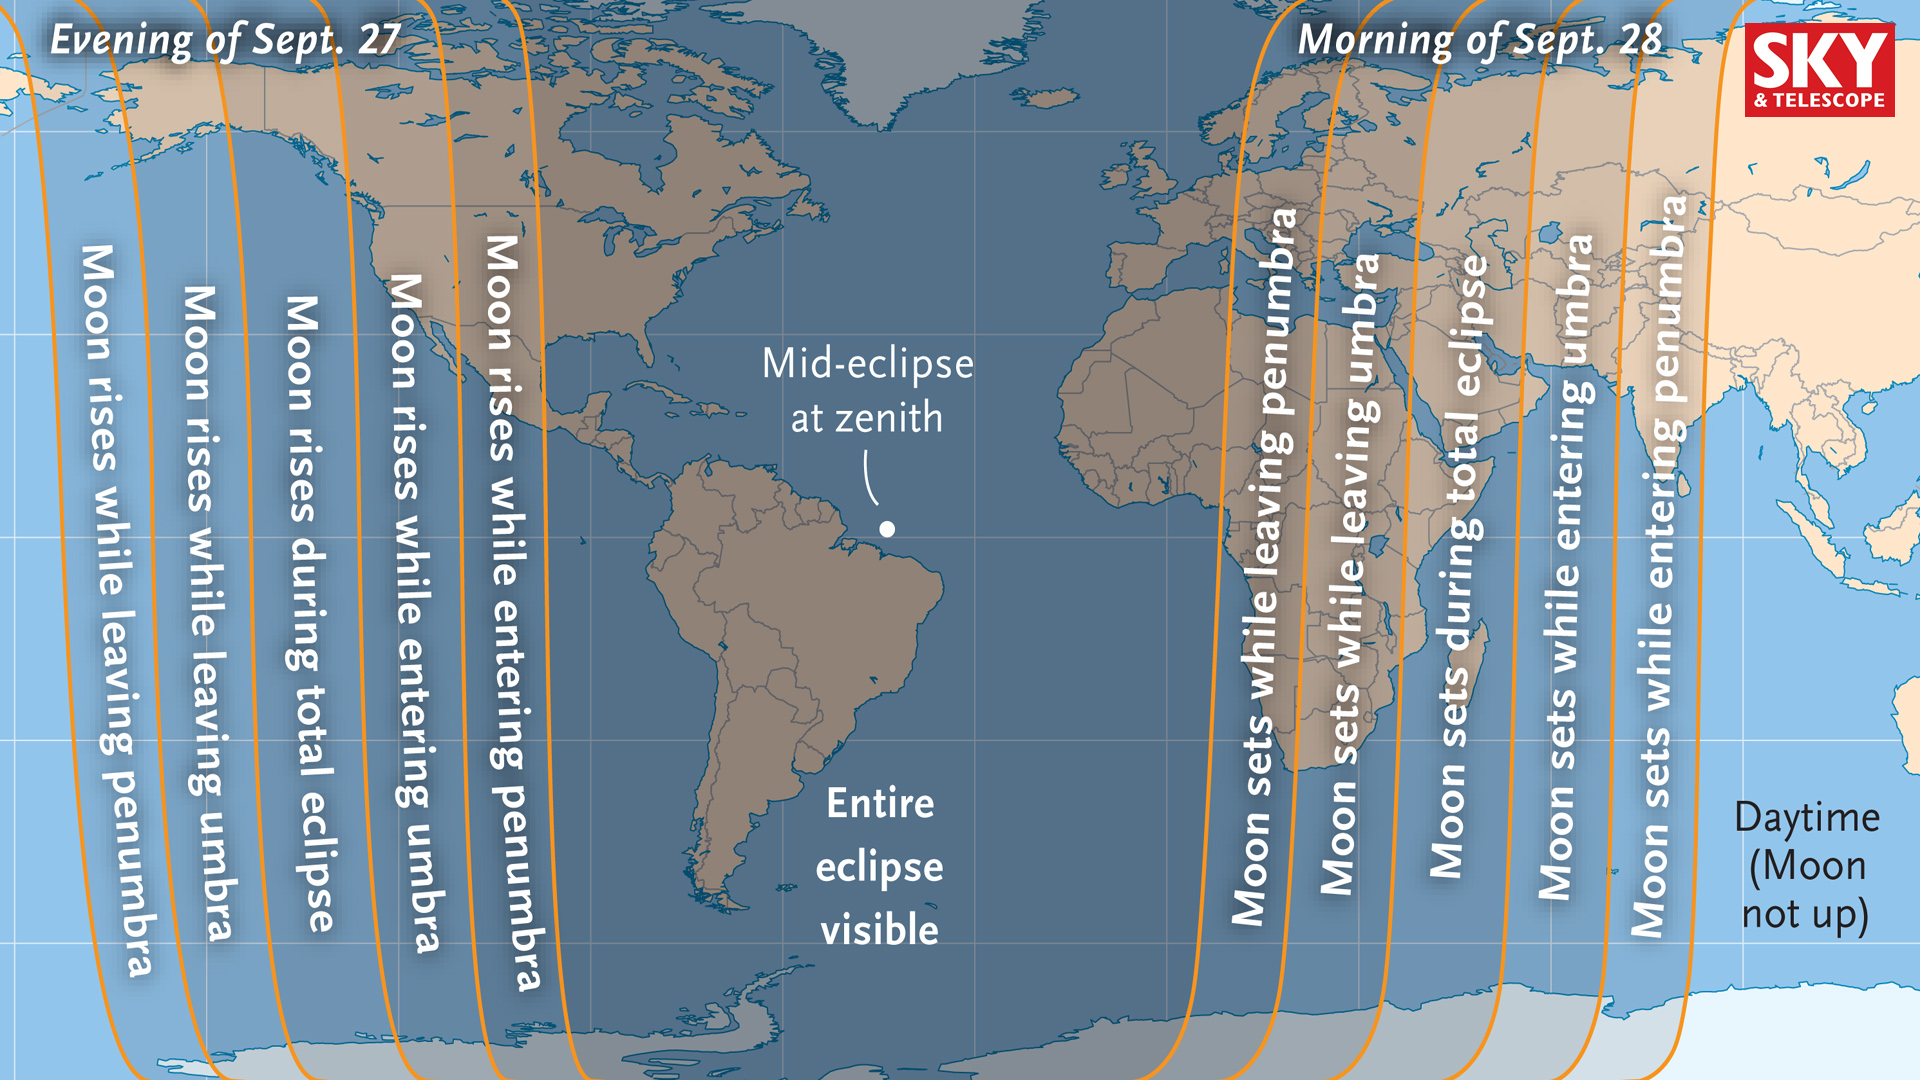 Who will see this month's total lunar eclipse?